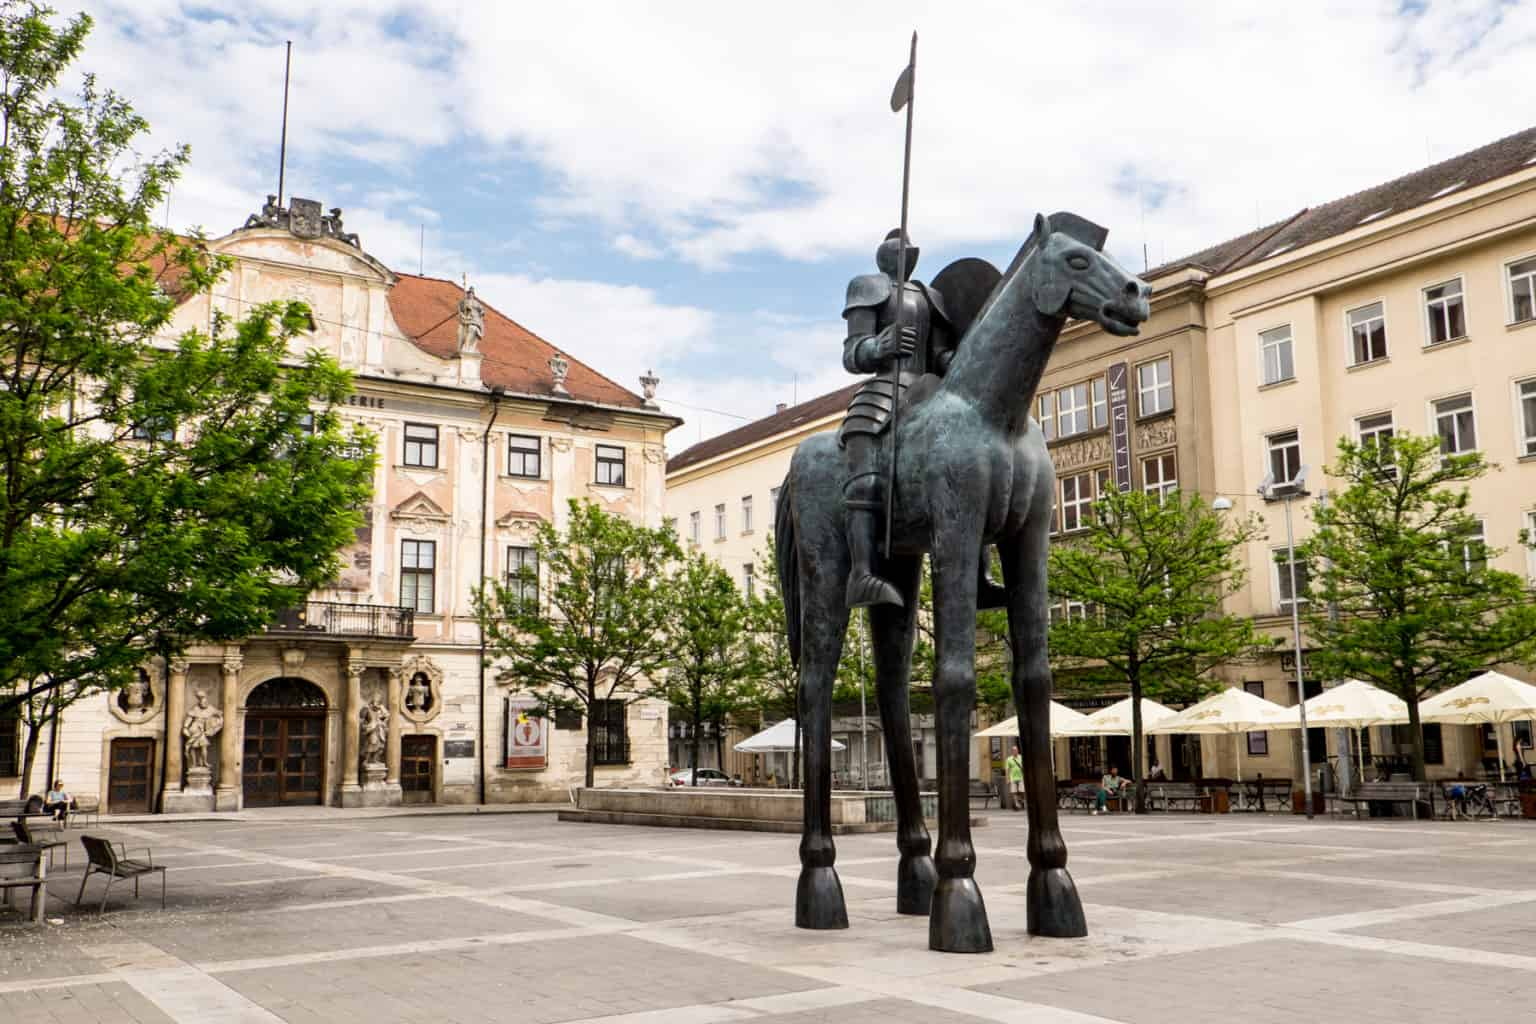 Statue of a bronze horse in brno in the middle of a square